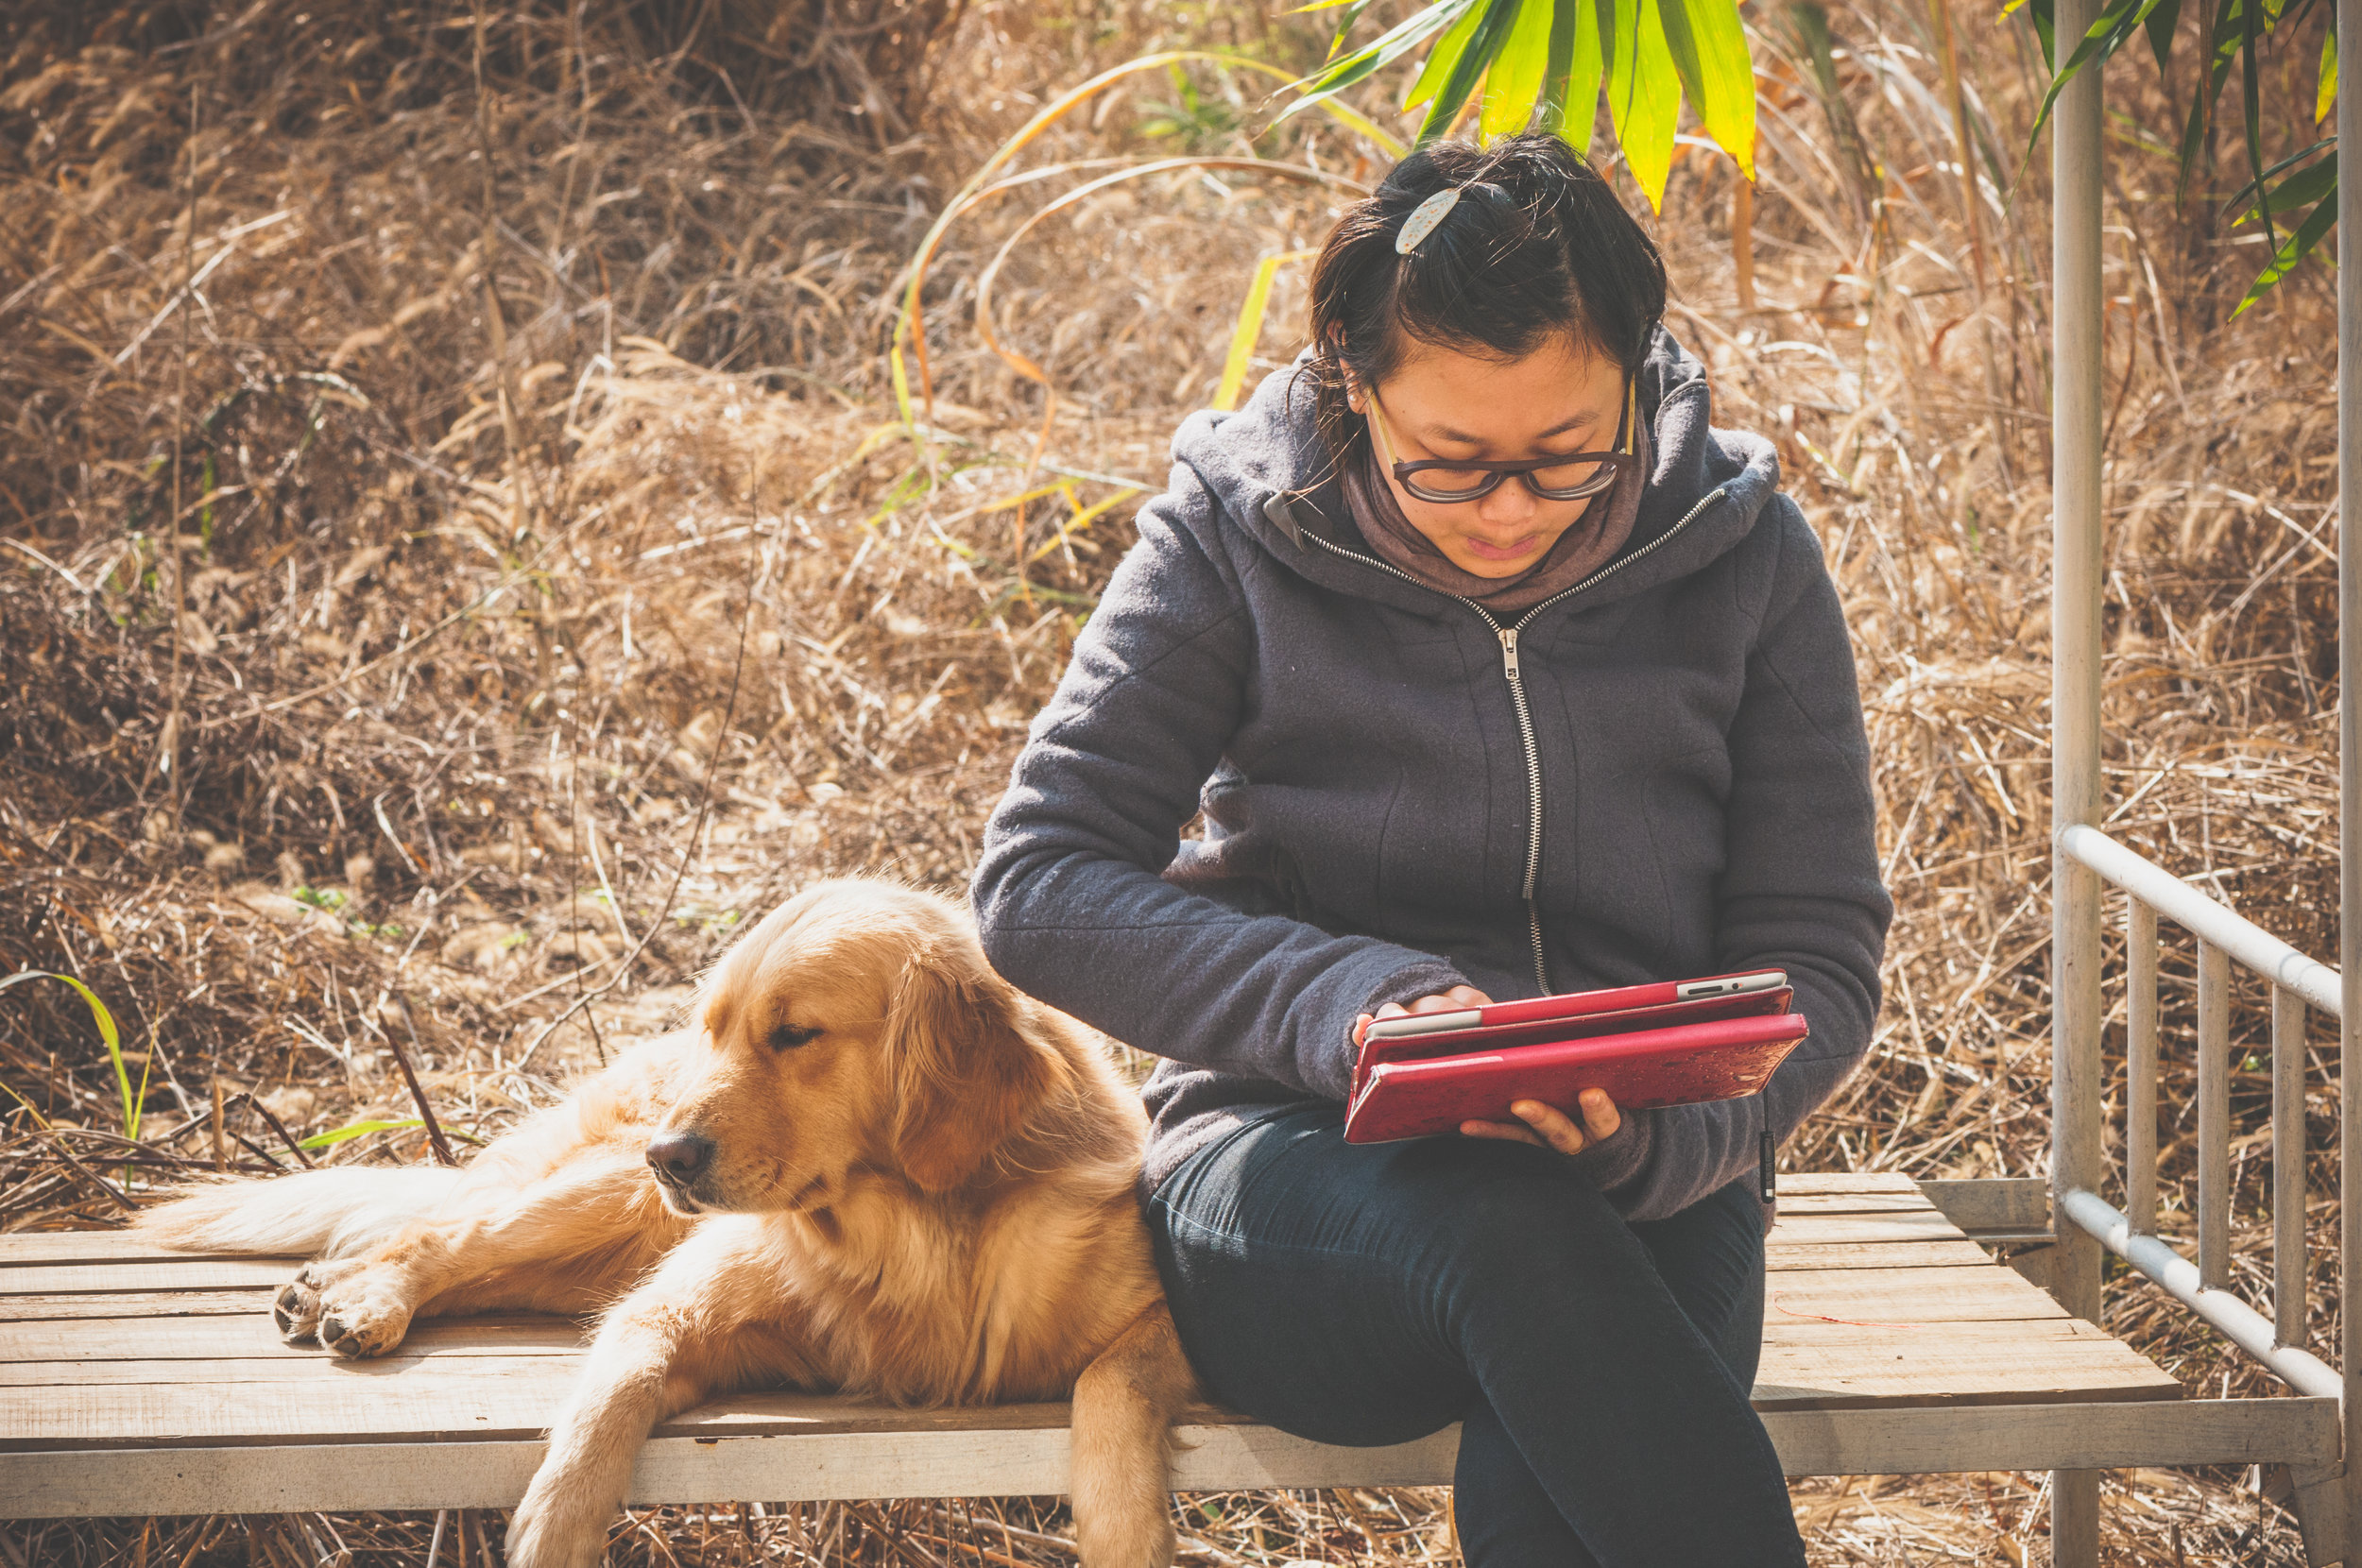 We can't guarantee your dog will approve, but BookBub is a bibliophile's dream.